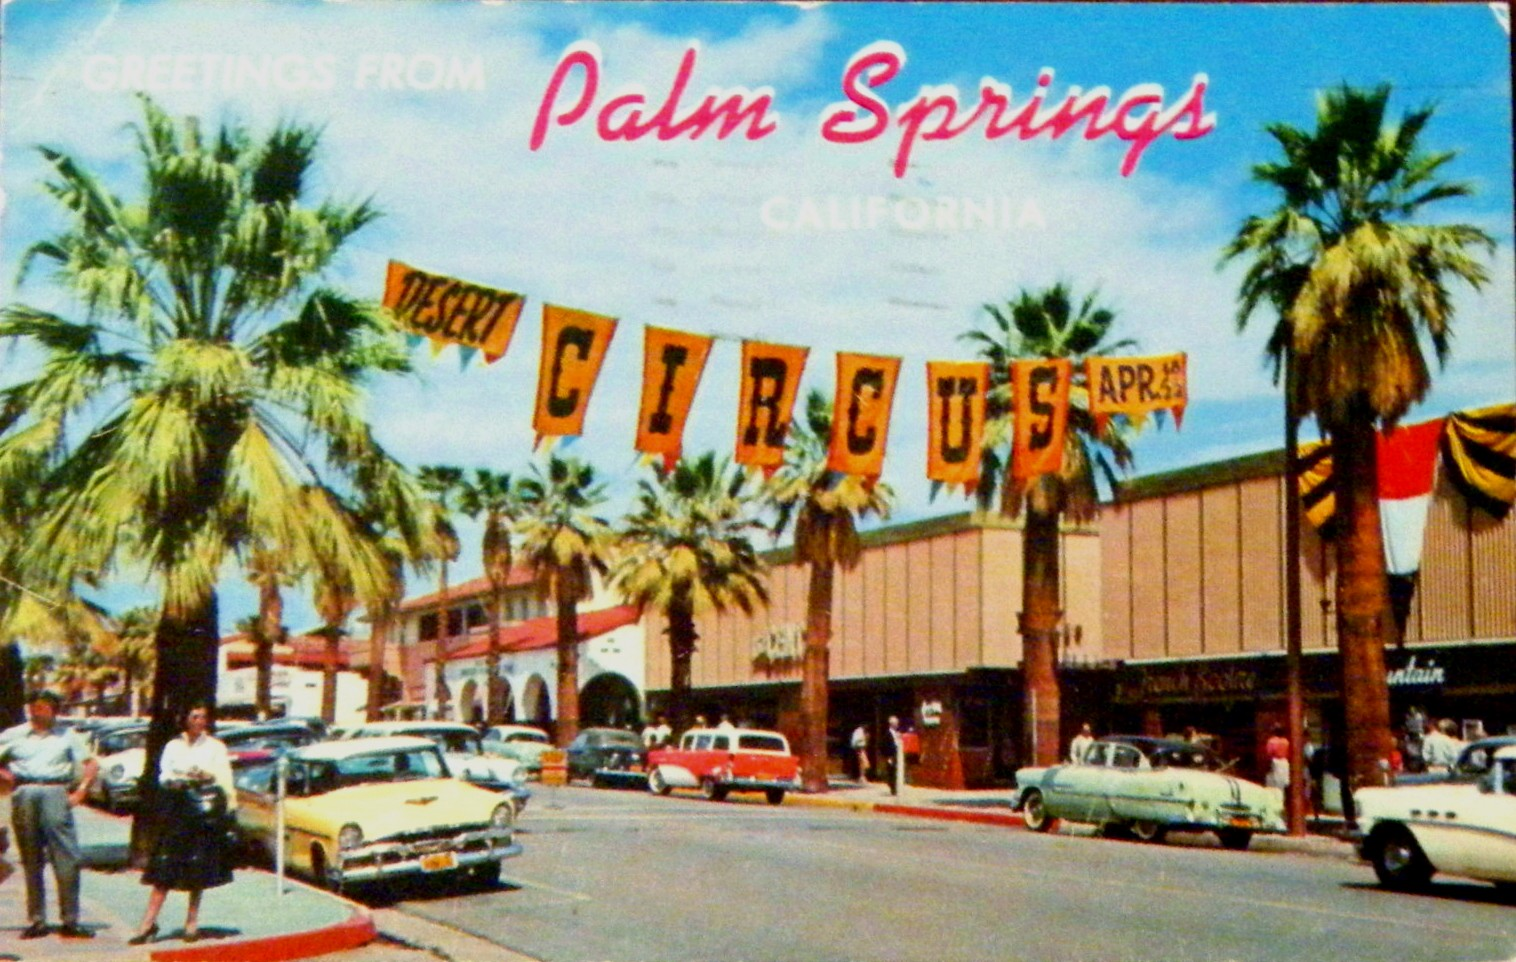 retro Palm Springs 1950s postcard vacation Just Peachy, Darling